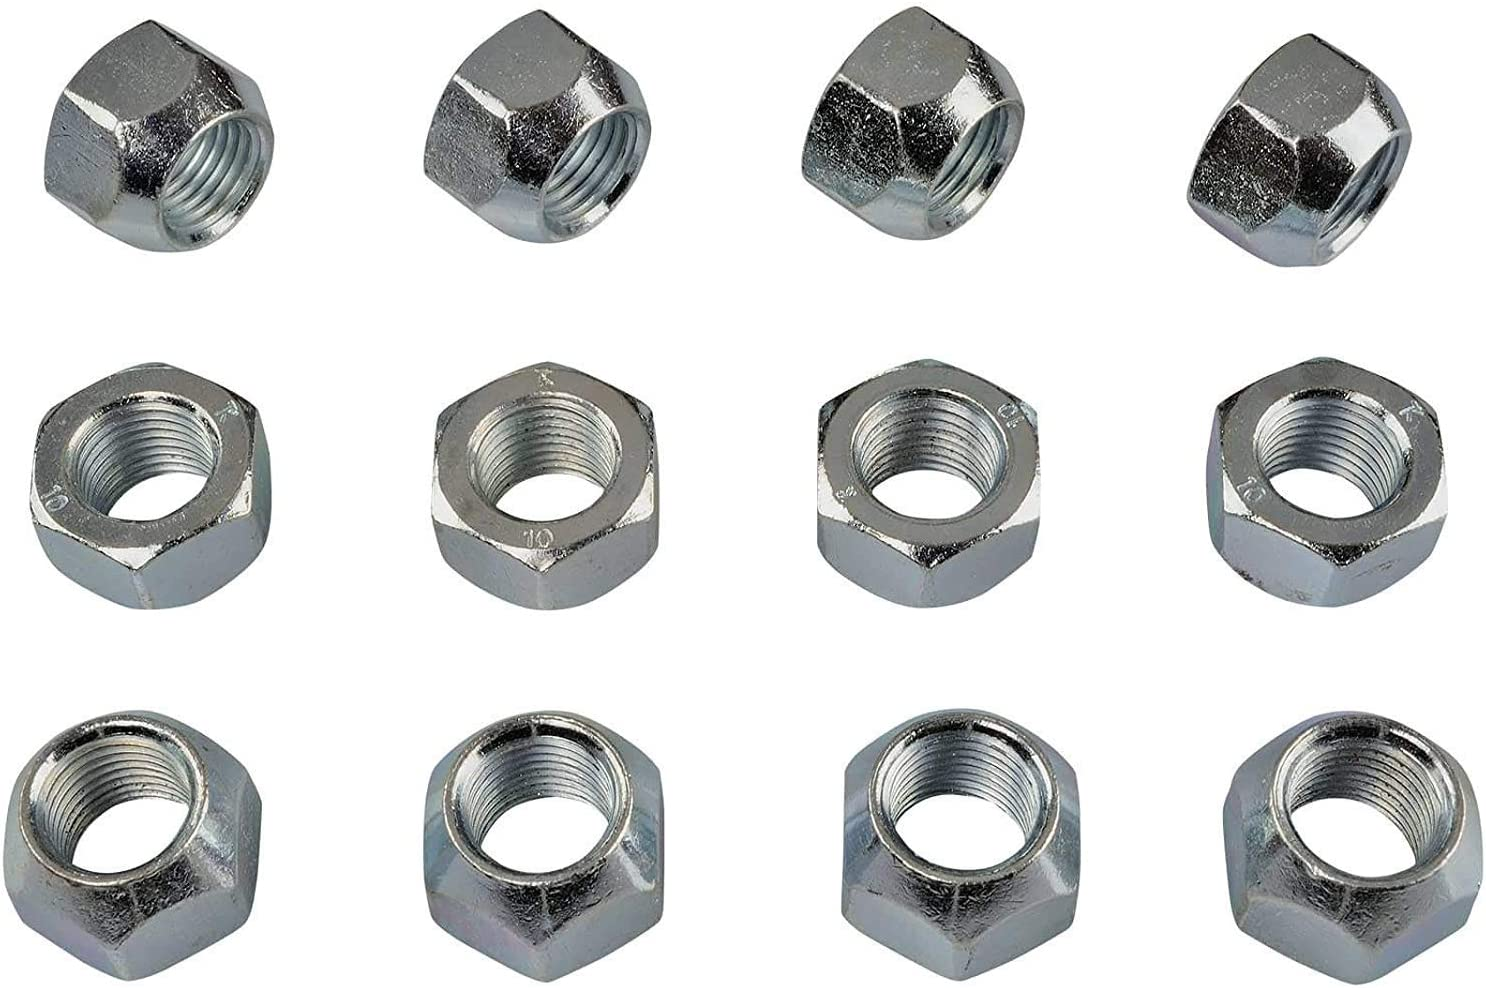 16x ZINC Wheel Nuts I Nut for Steel Wheels I Taper Seat Open I M12x1 5 SW19 I for fo Models